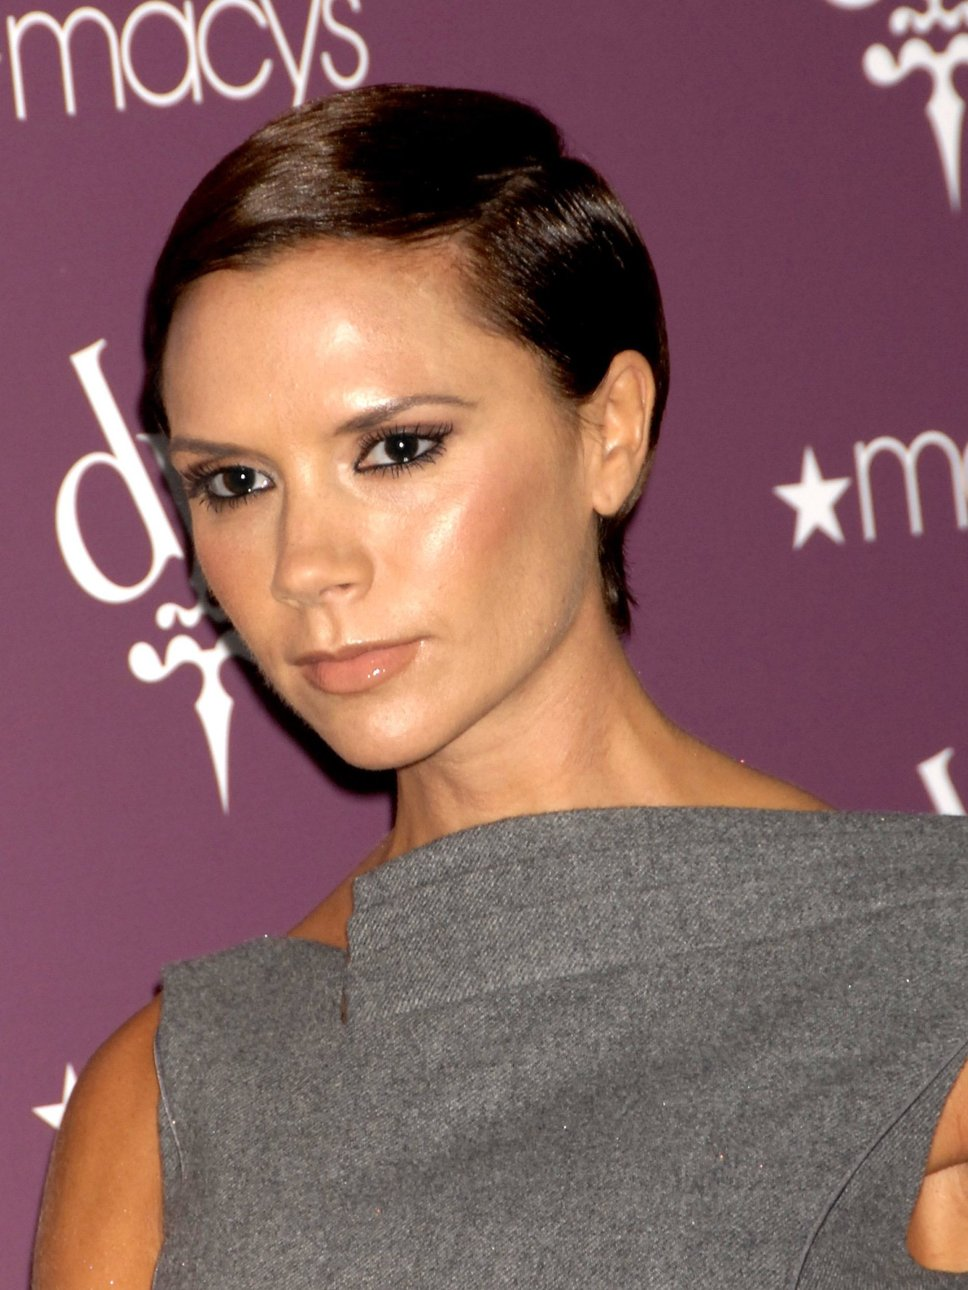 Victoria Beckham's Hairstyles: Short Cuts and Beyond - ELLE